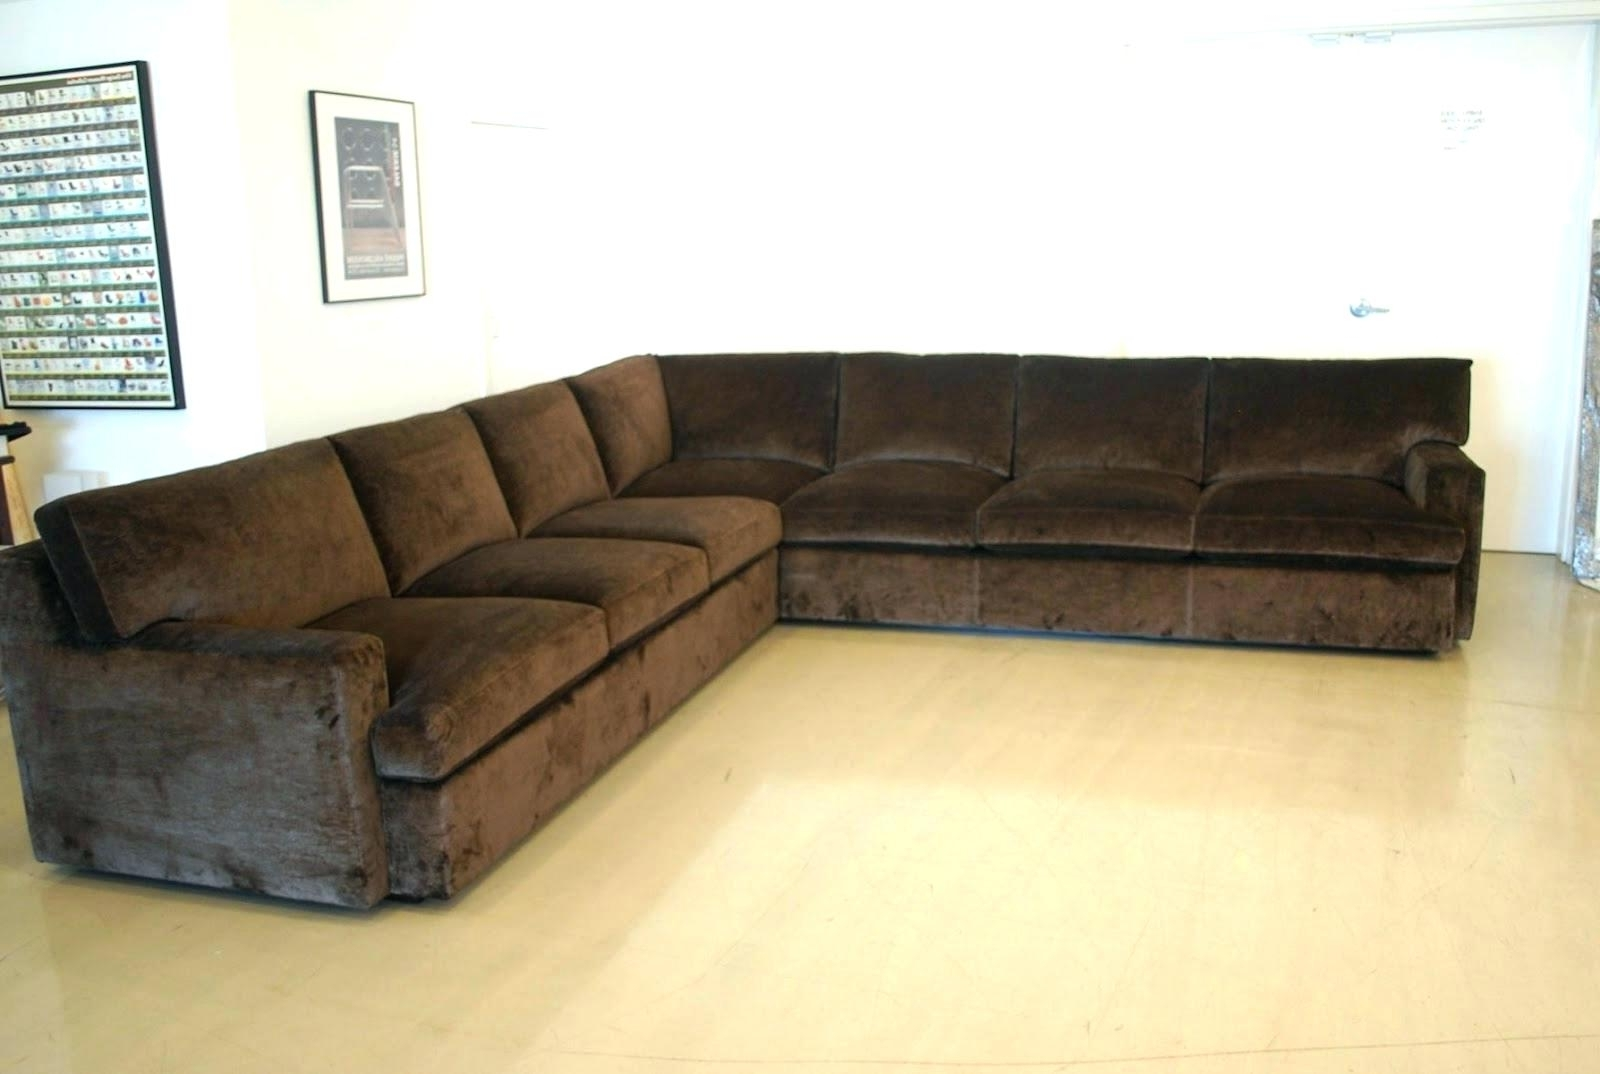 Sofas Online Full Size Of Sectional Sofaonline Custom Sofa Build Pertaining To Latest Sectional Sofas At Bangalore (View 16 of 20)